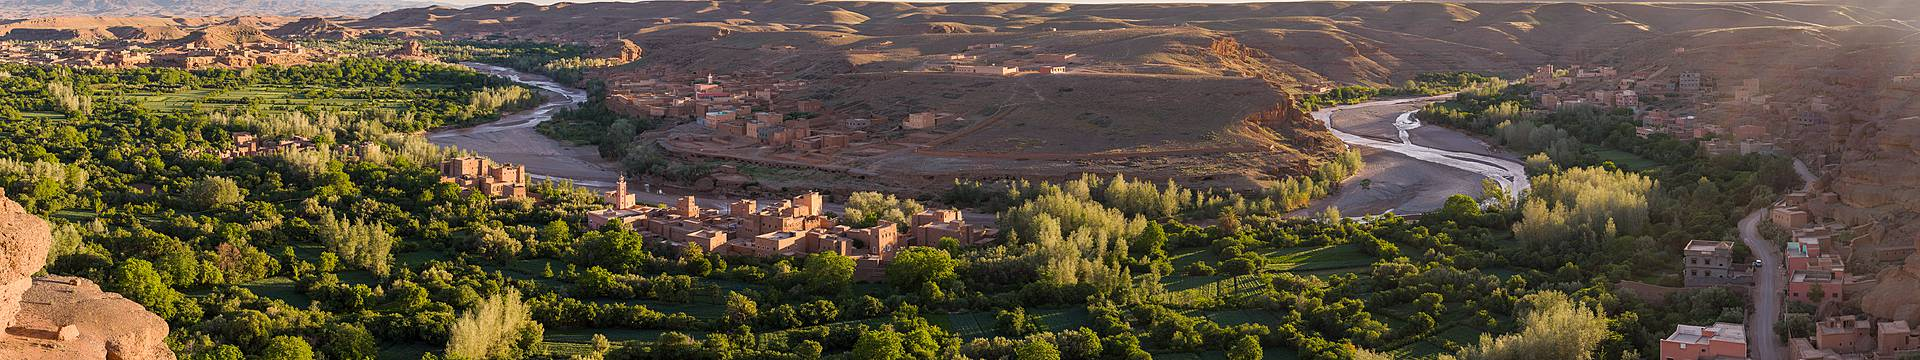 Morocco vacations